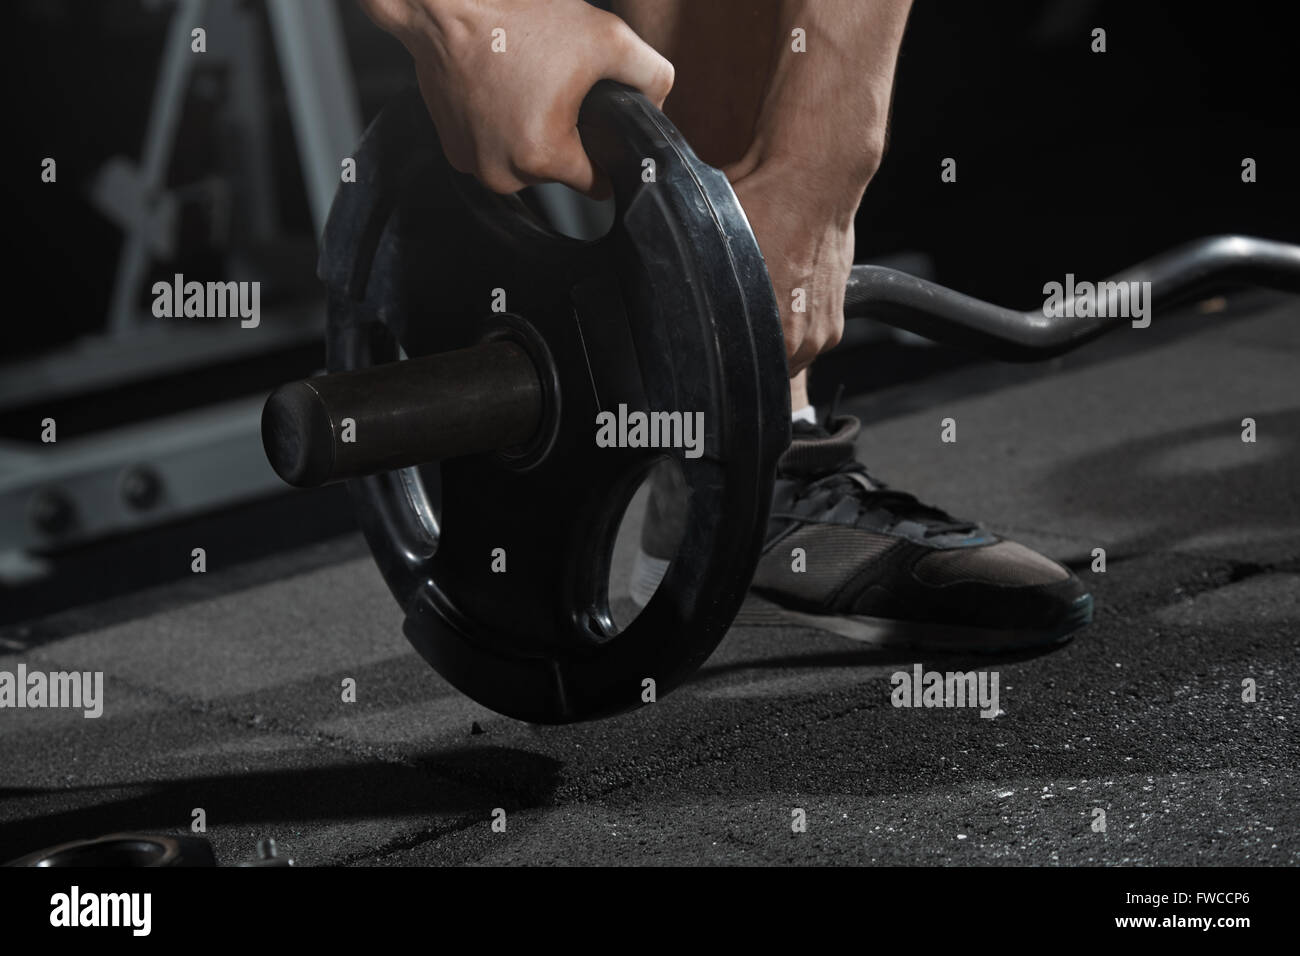 Man preparing barbell at fitness club - Stock Image